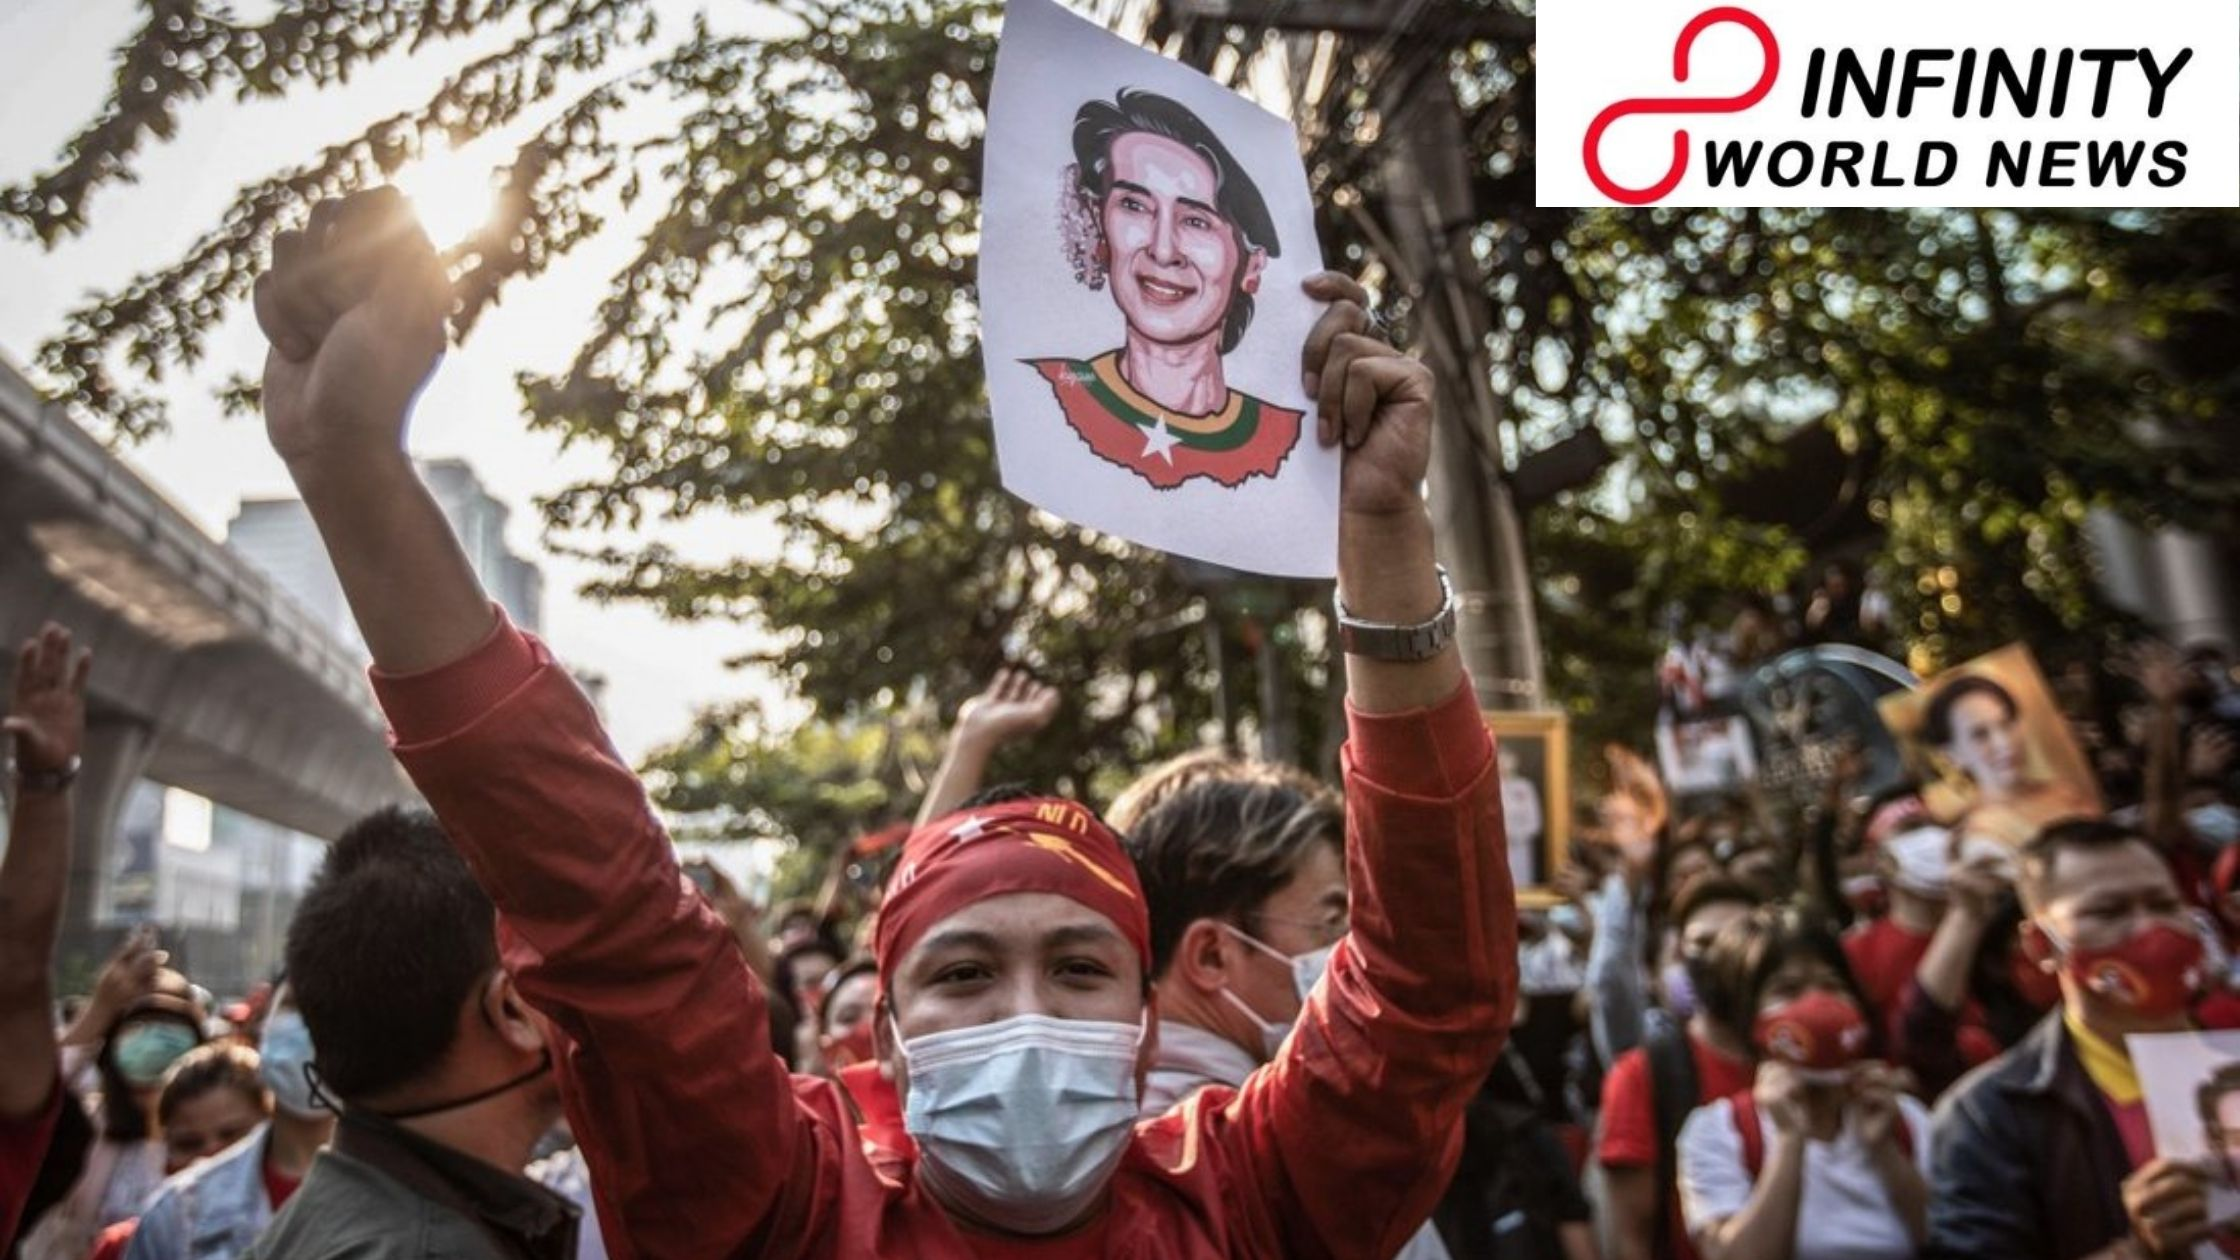 Myanmar: Aung San Suu Kyi faces new charge amid fights